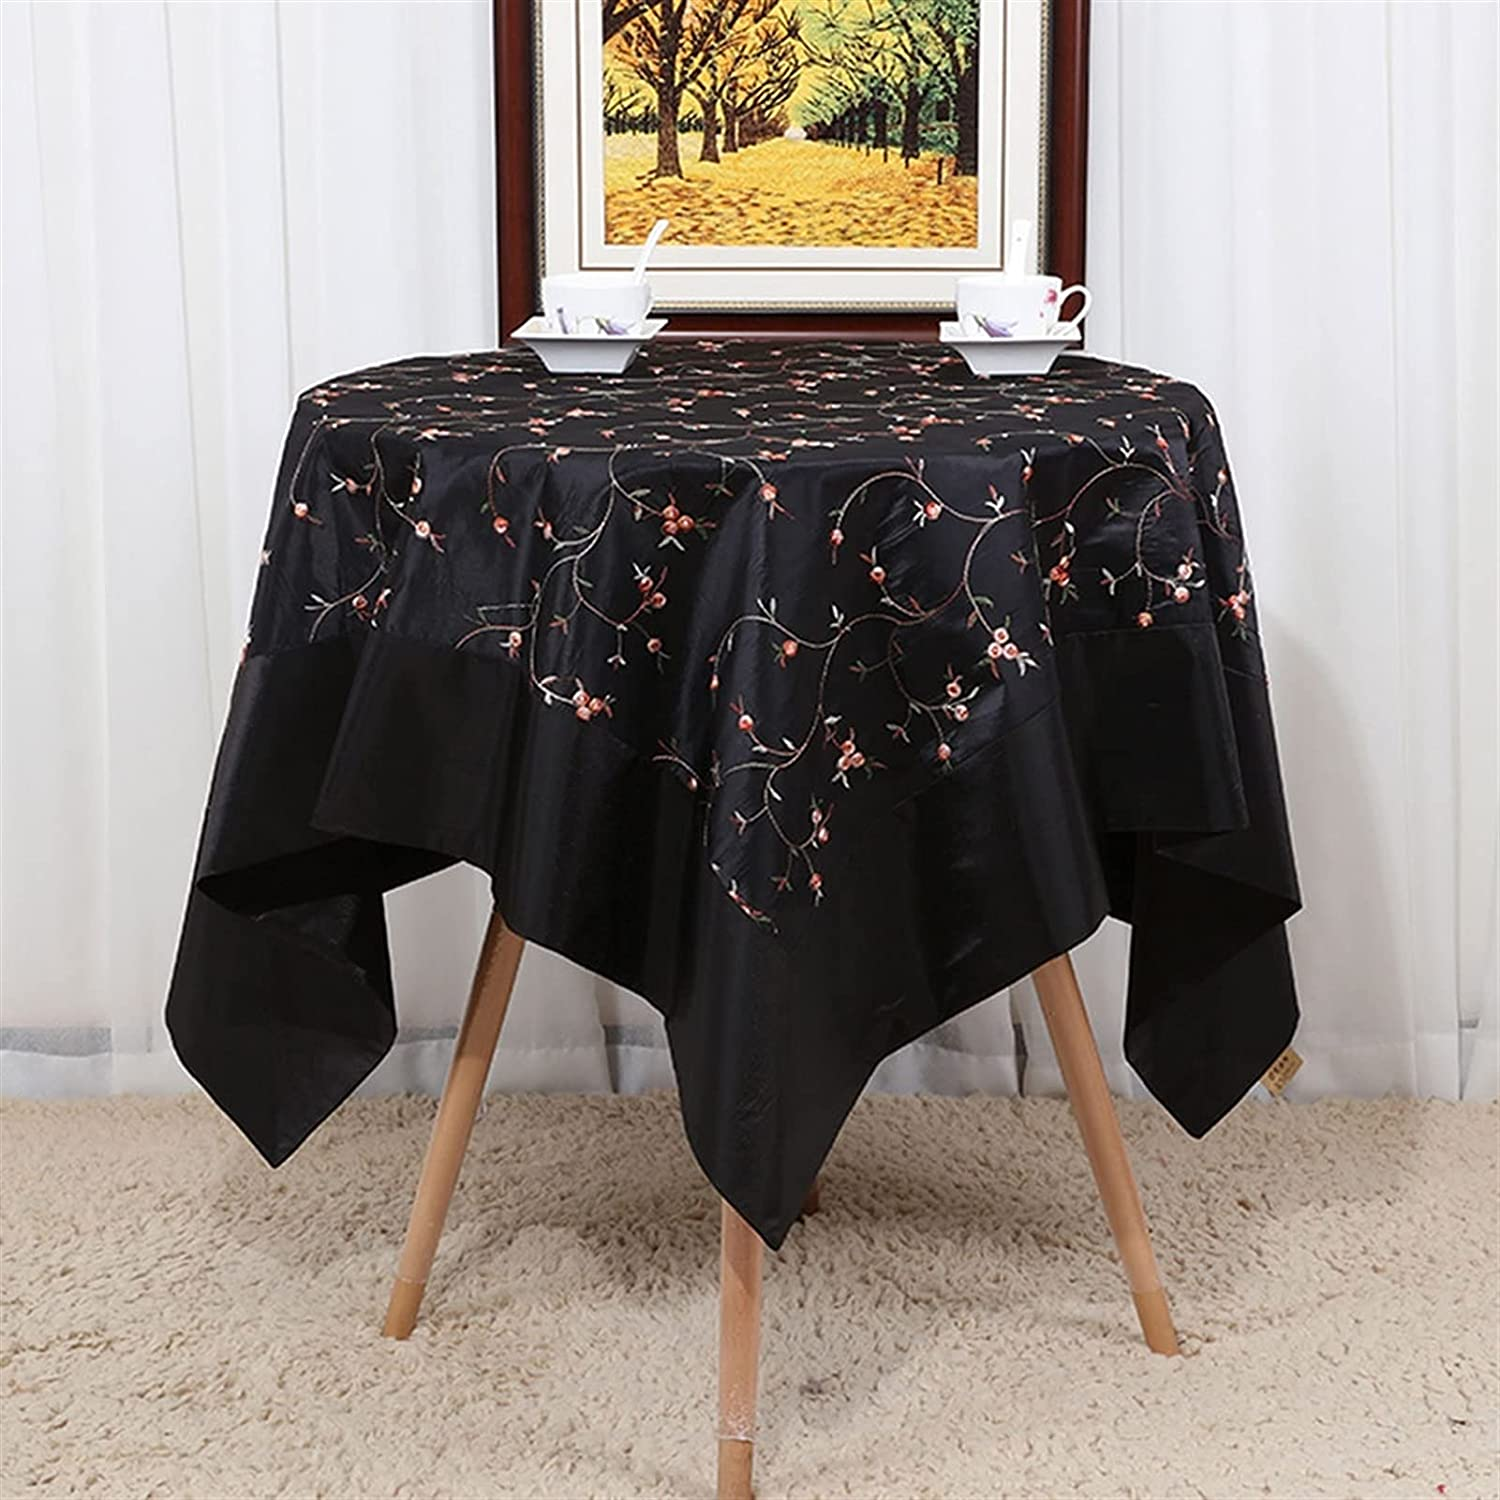 WENLI Tablecloths Handmade Simple Christmas New Hom Special Excellence Campaign Kitchen Year